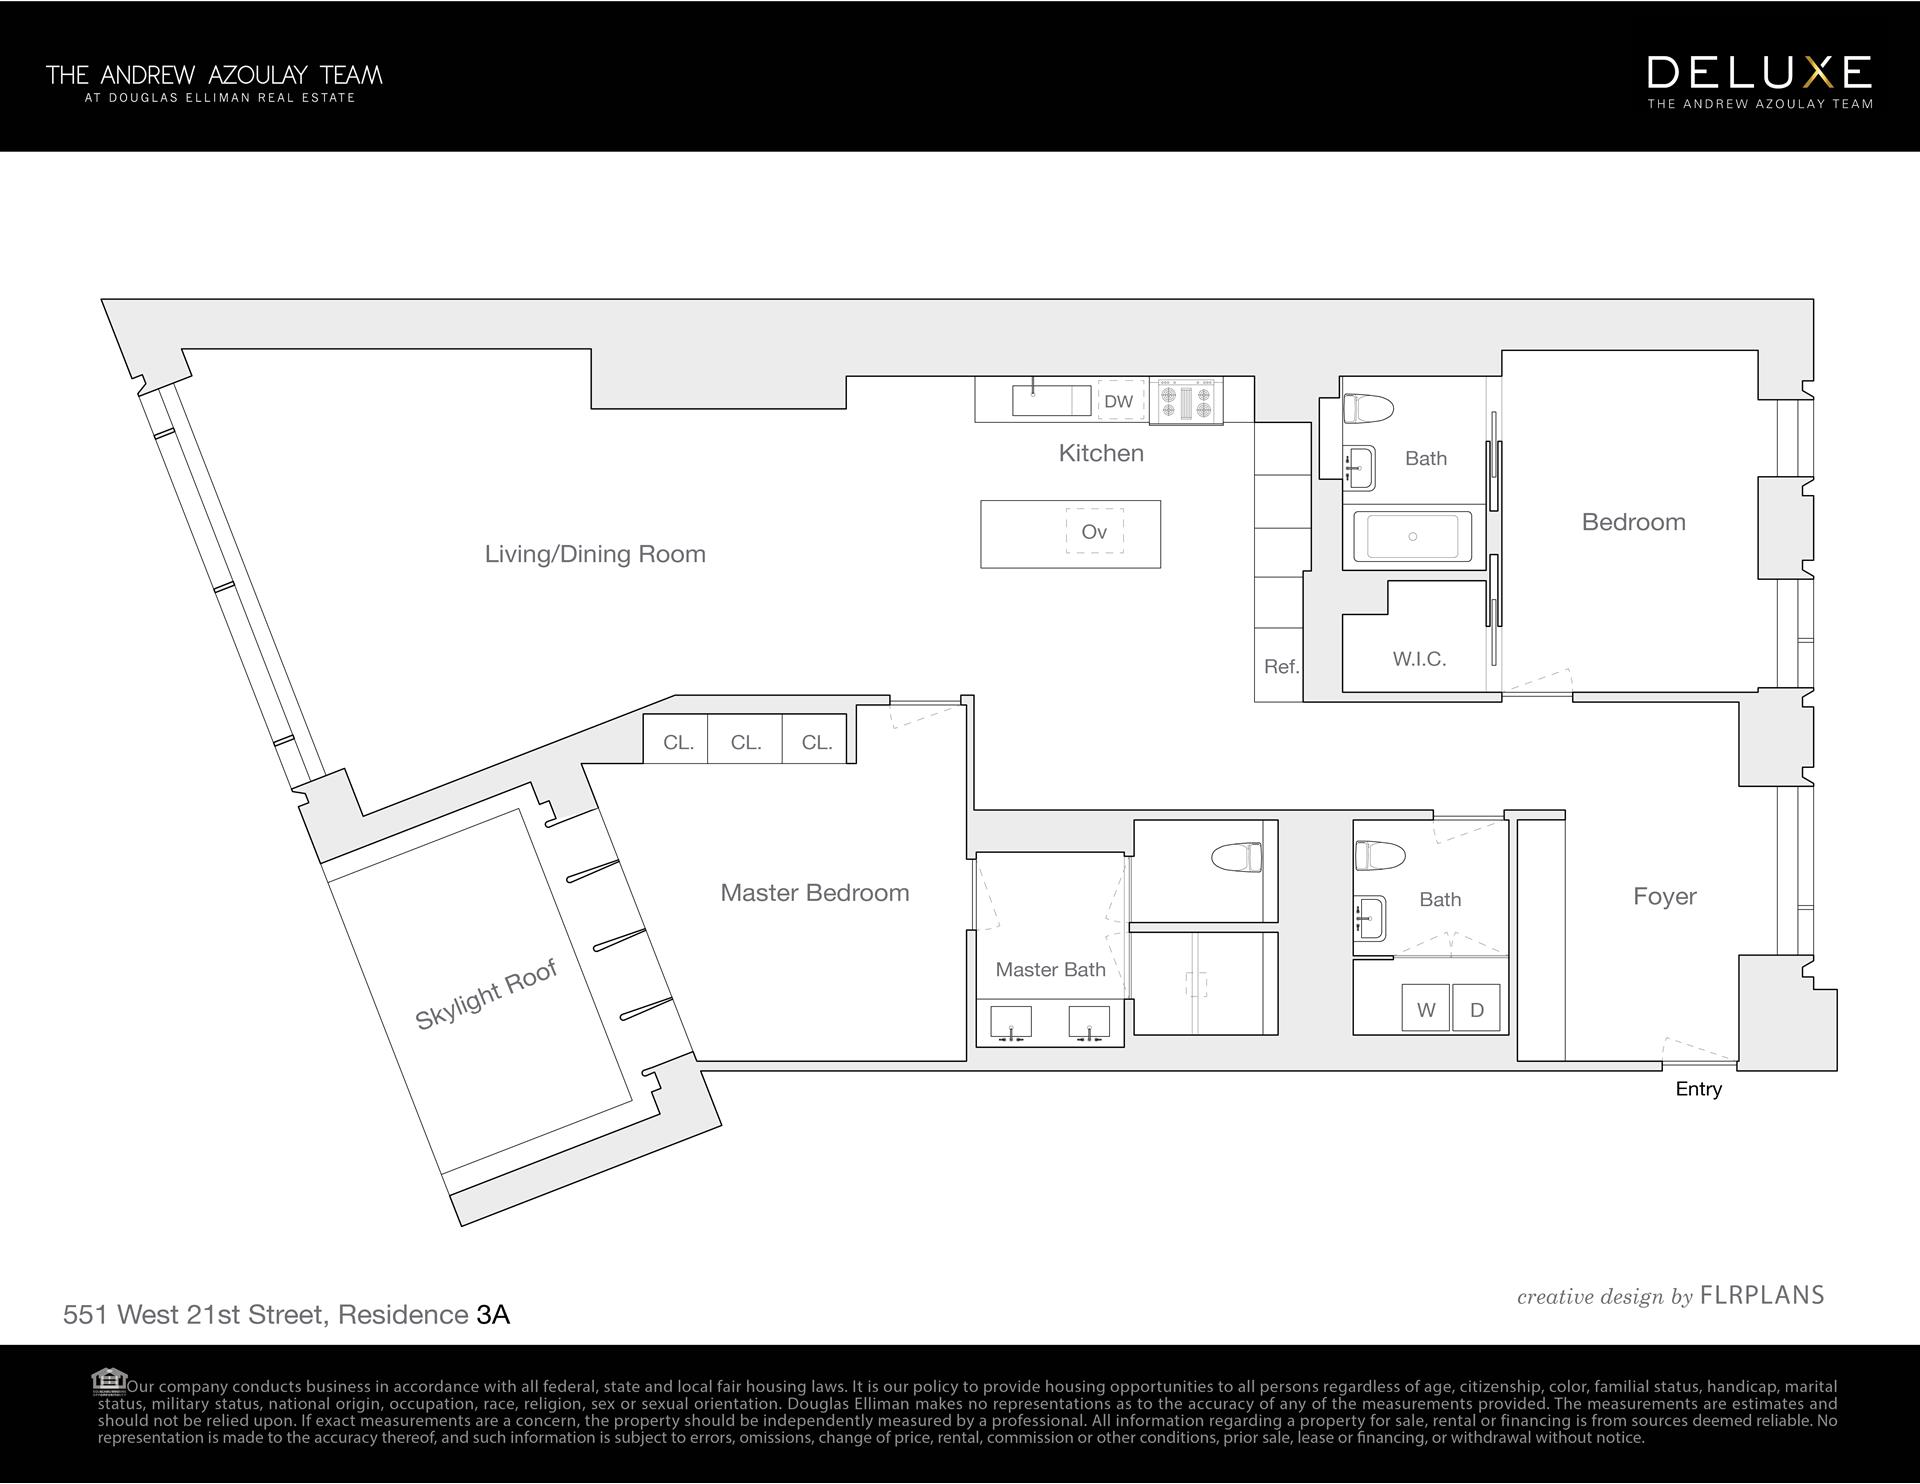 Floor plan of 551 West 21st St, 3A - Chelsea, New York